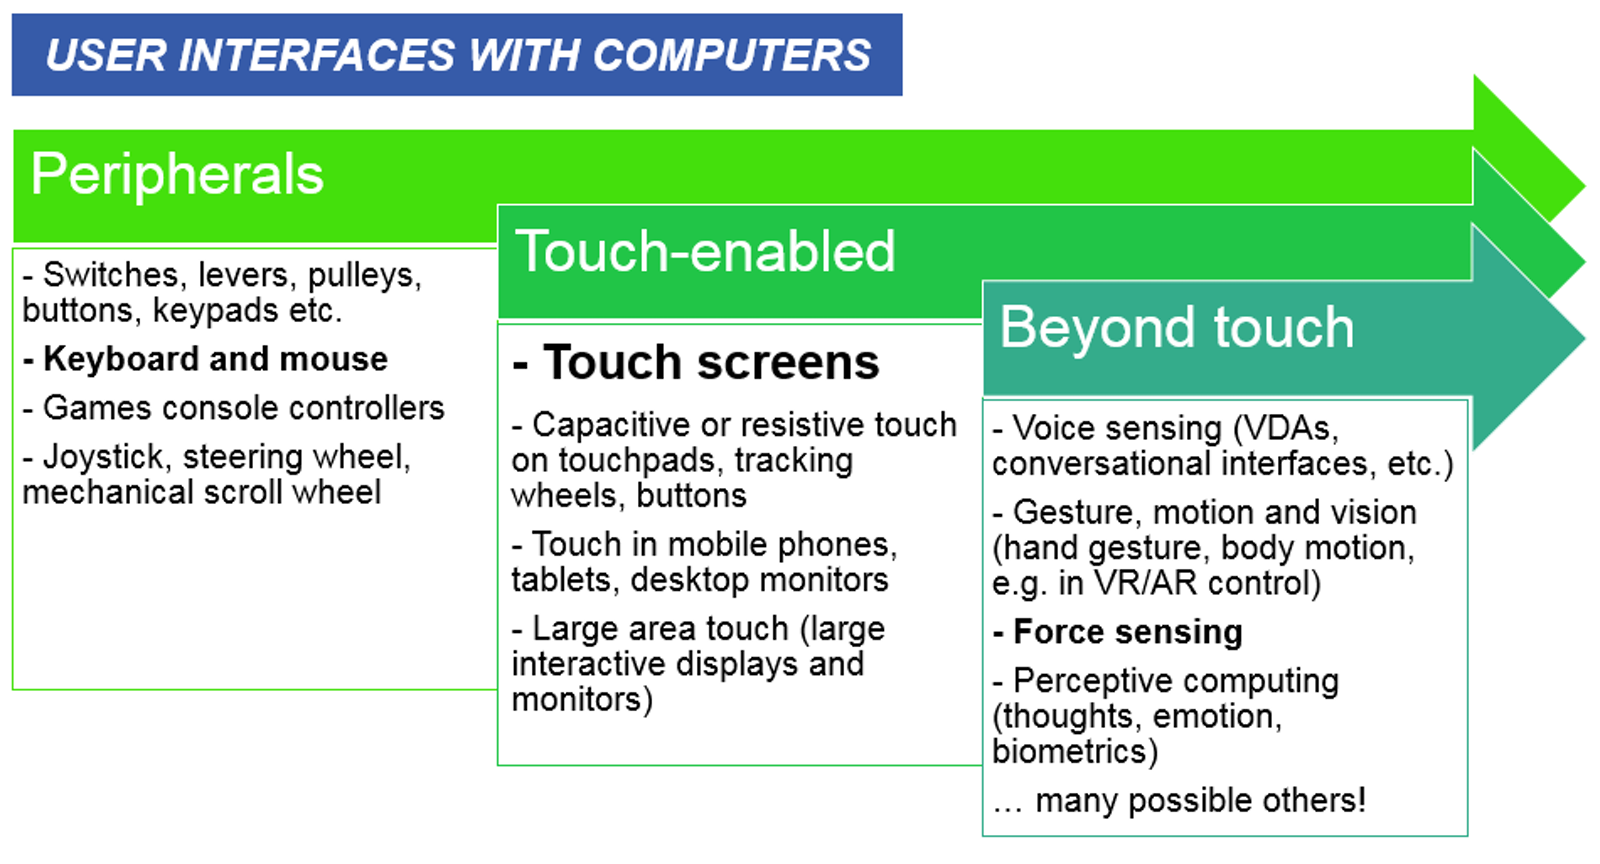 Force Sensing in User Interfaces 2017-2027: IDTechEx